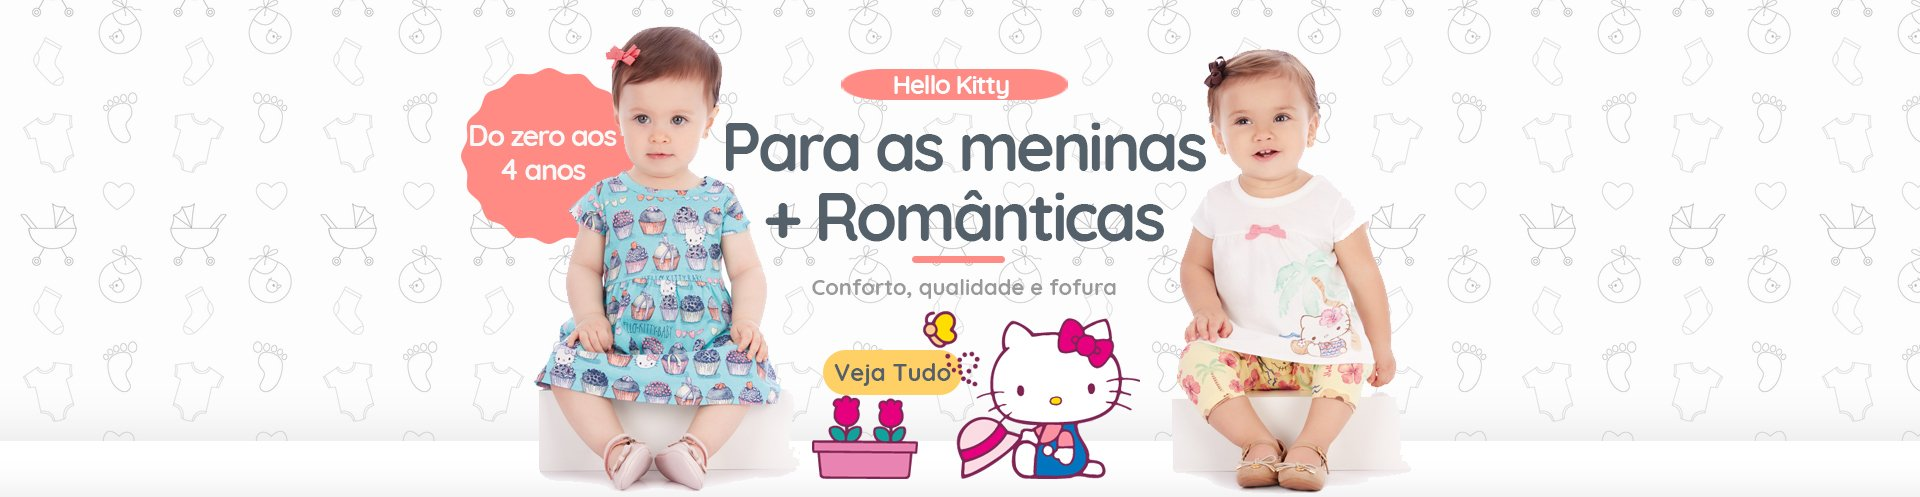 Banner Hello Kitty